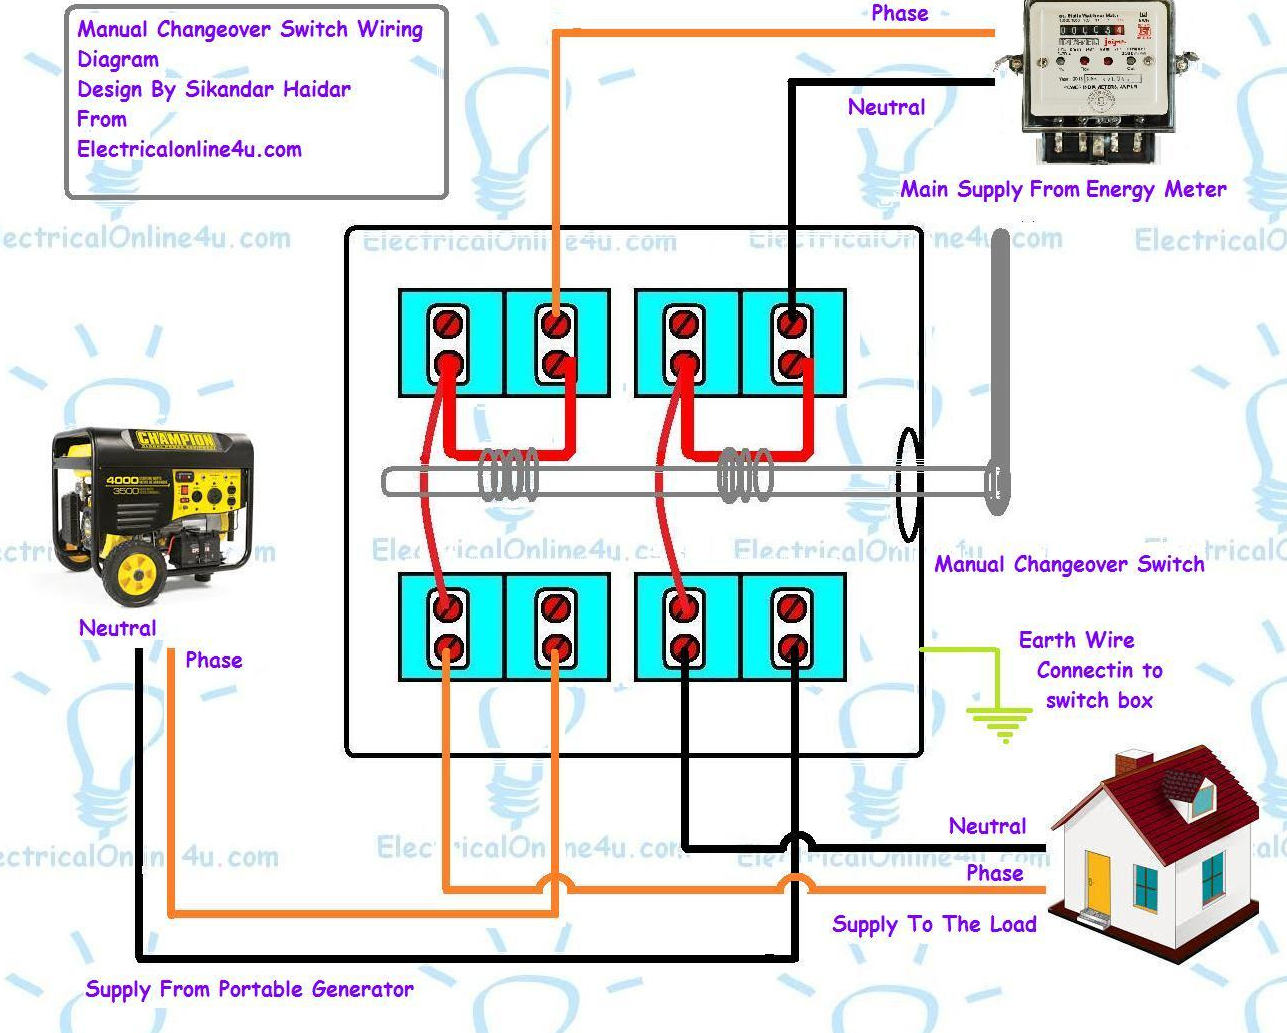 hight resolution of manual changeover switch wiring diagram for portable generator home built wind generator transfer switch wiring